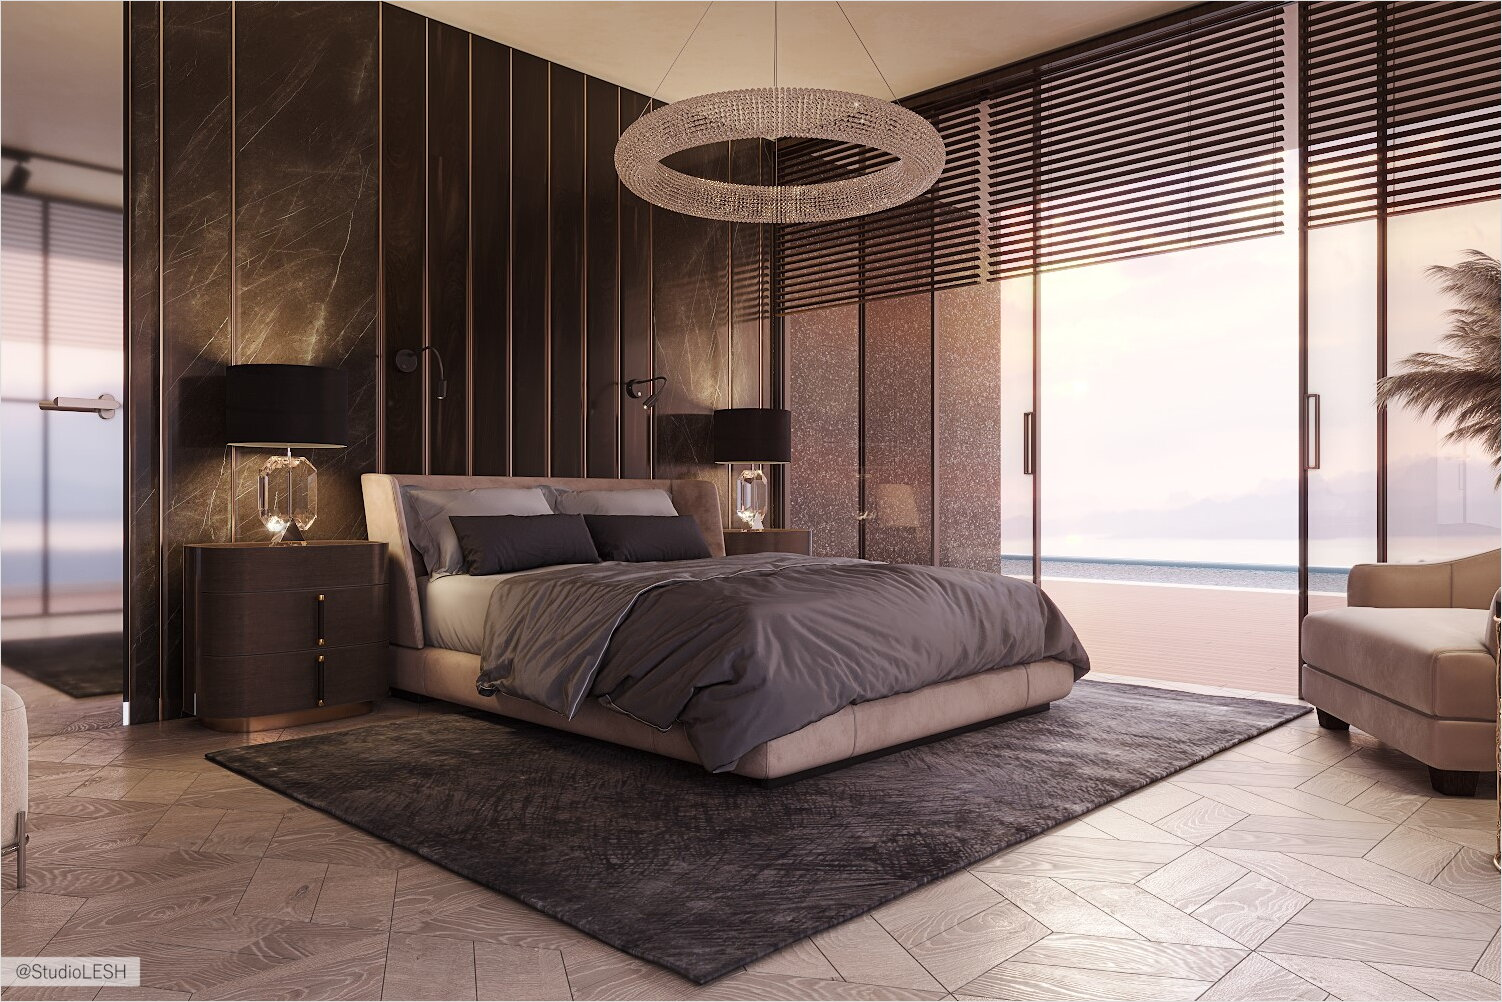 Bedroom with panoramic windows and mirrored floor doors